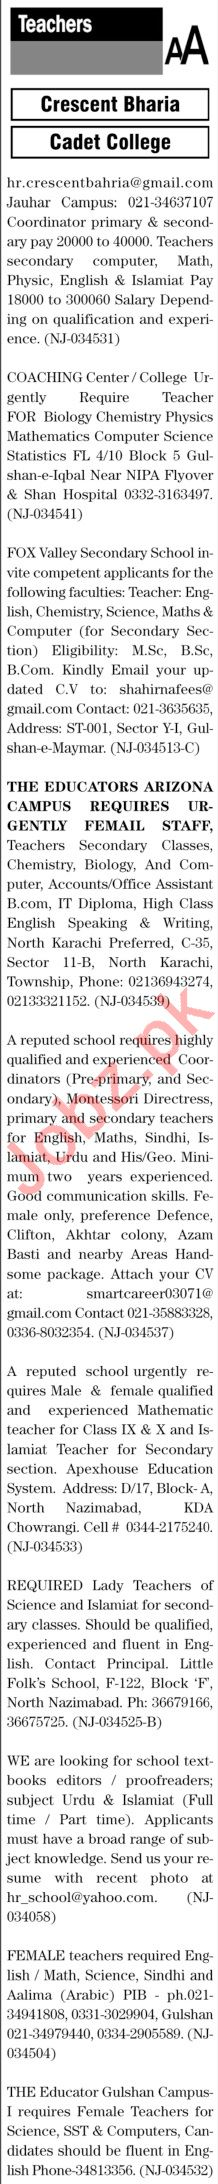 The News Sunday Classified Ads 14th Feb 2021 for Teachers